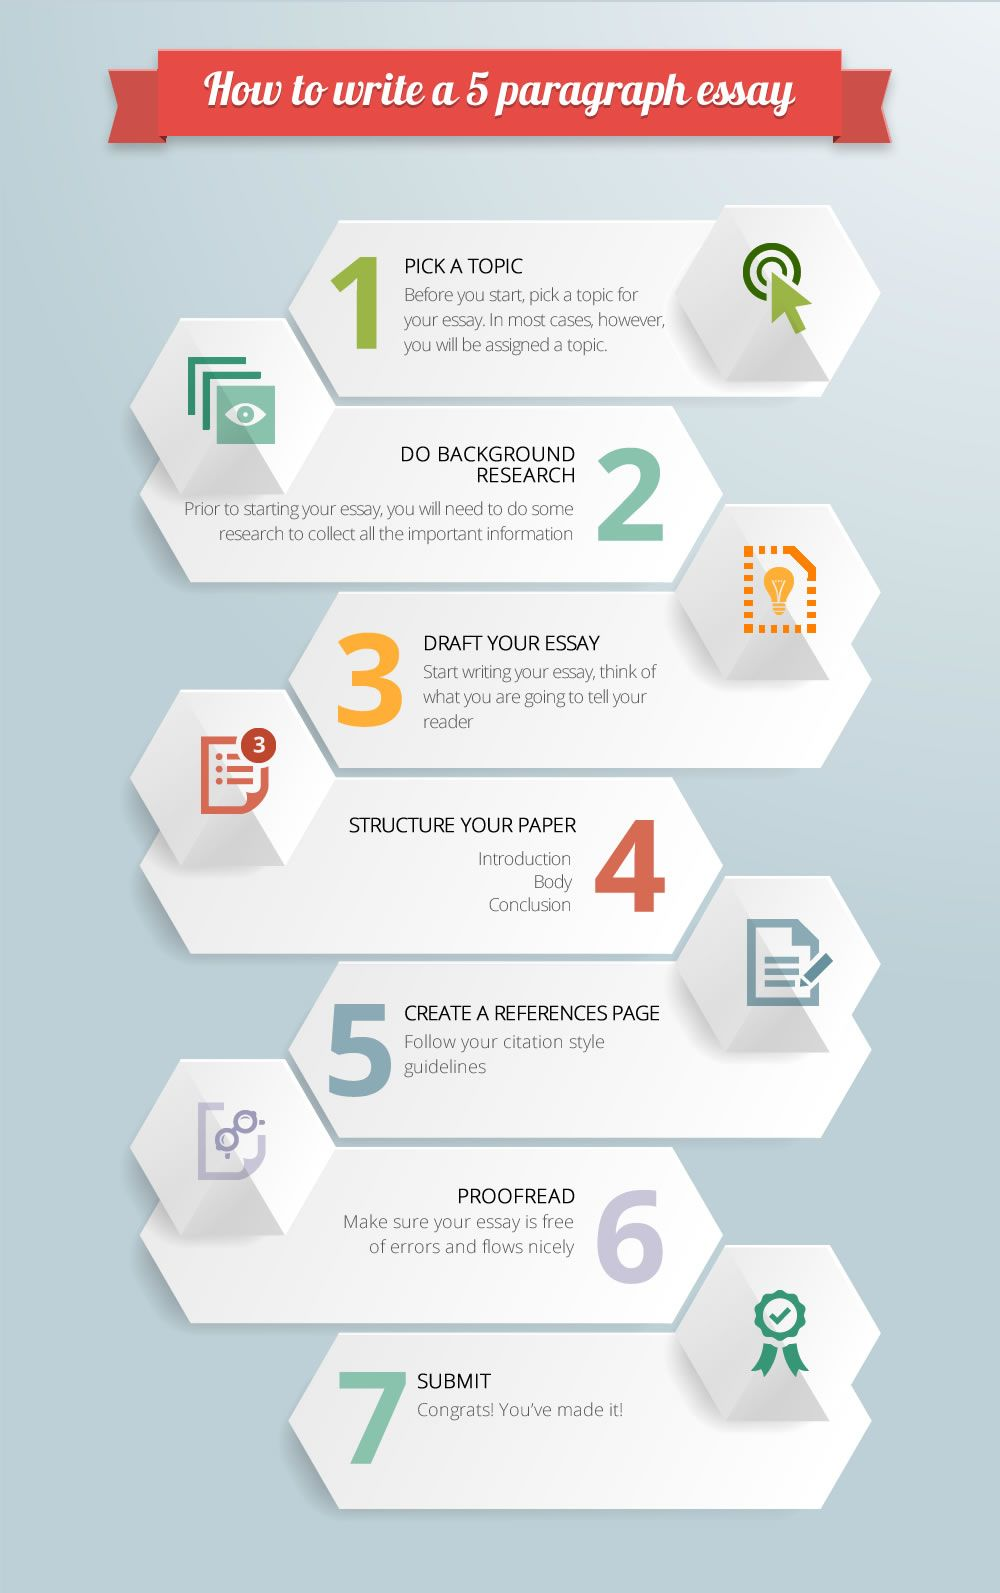 AWESOME infographic on fiveparagraph essay outline! Check